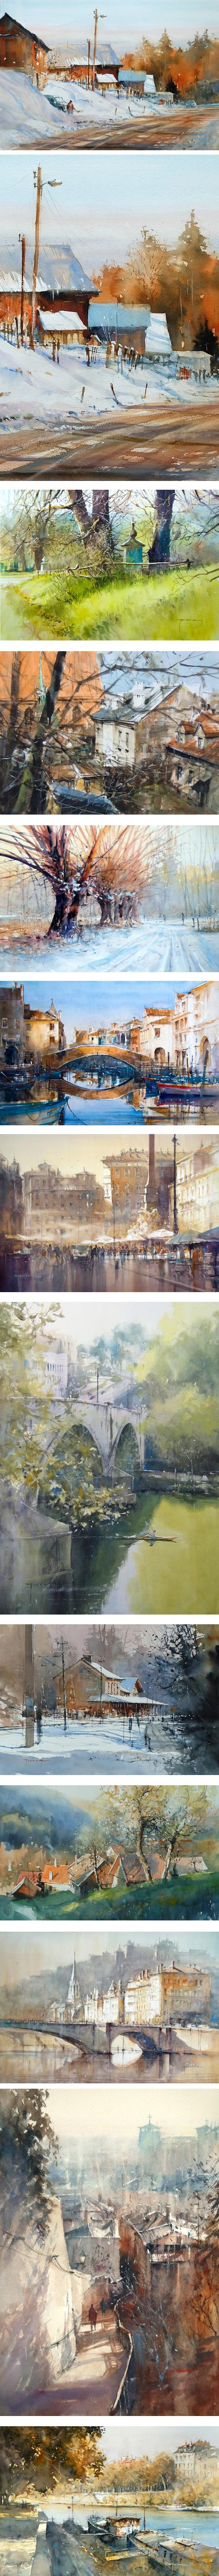 Michal Jasiewicz, watercolors